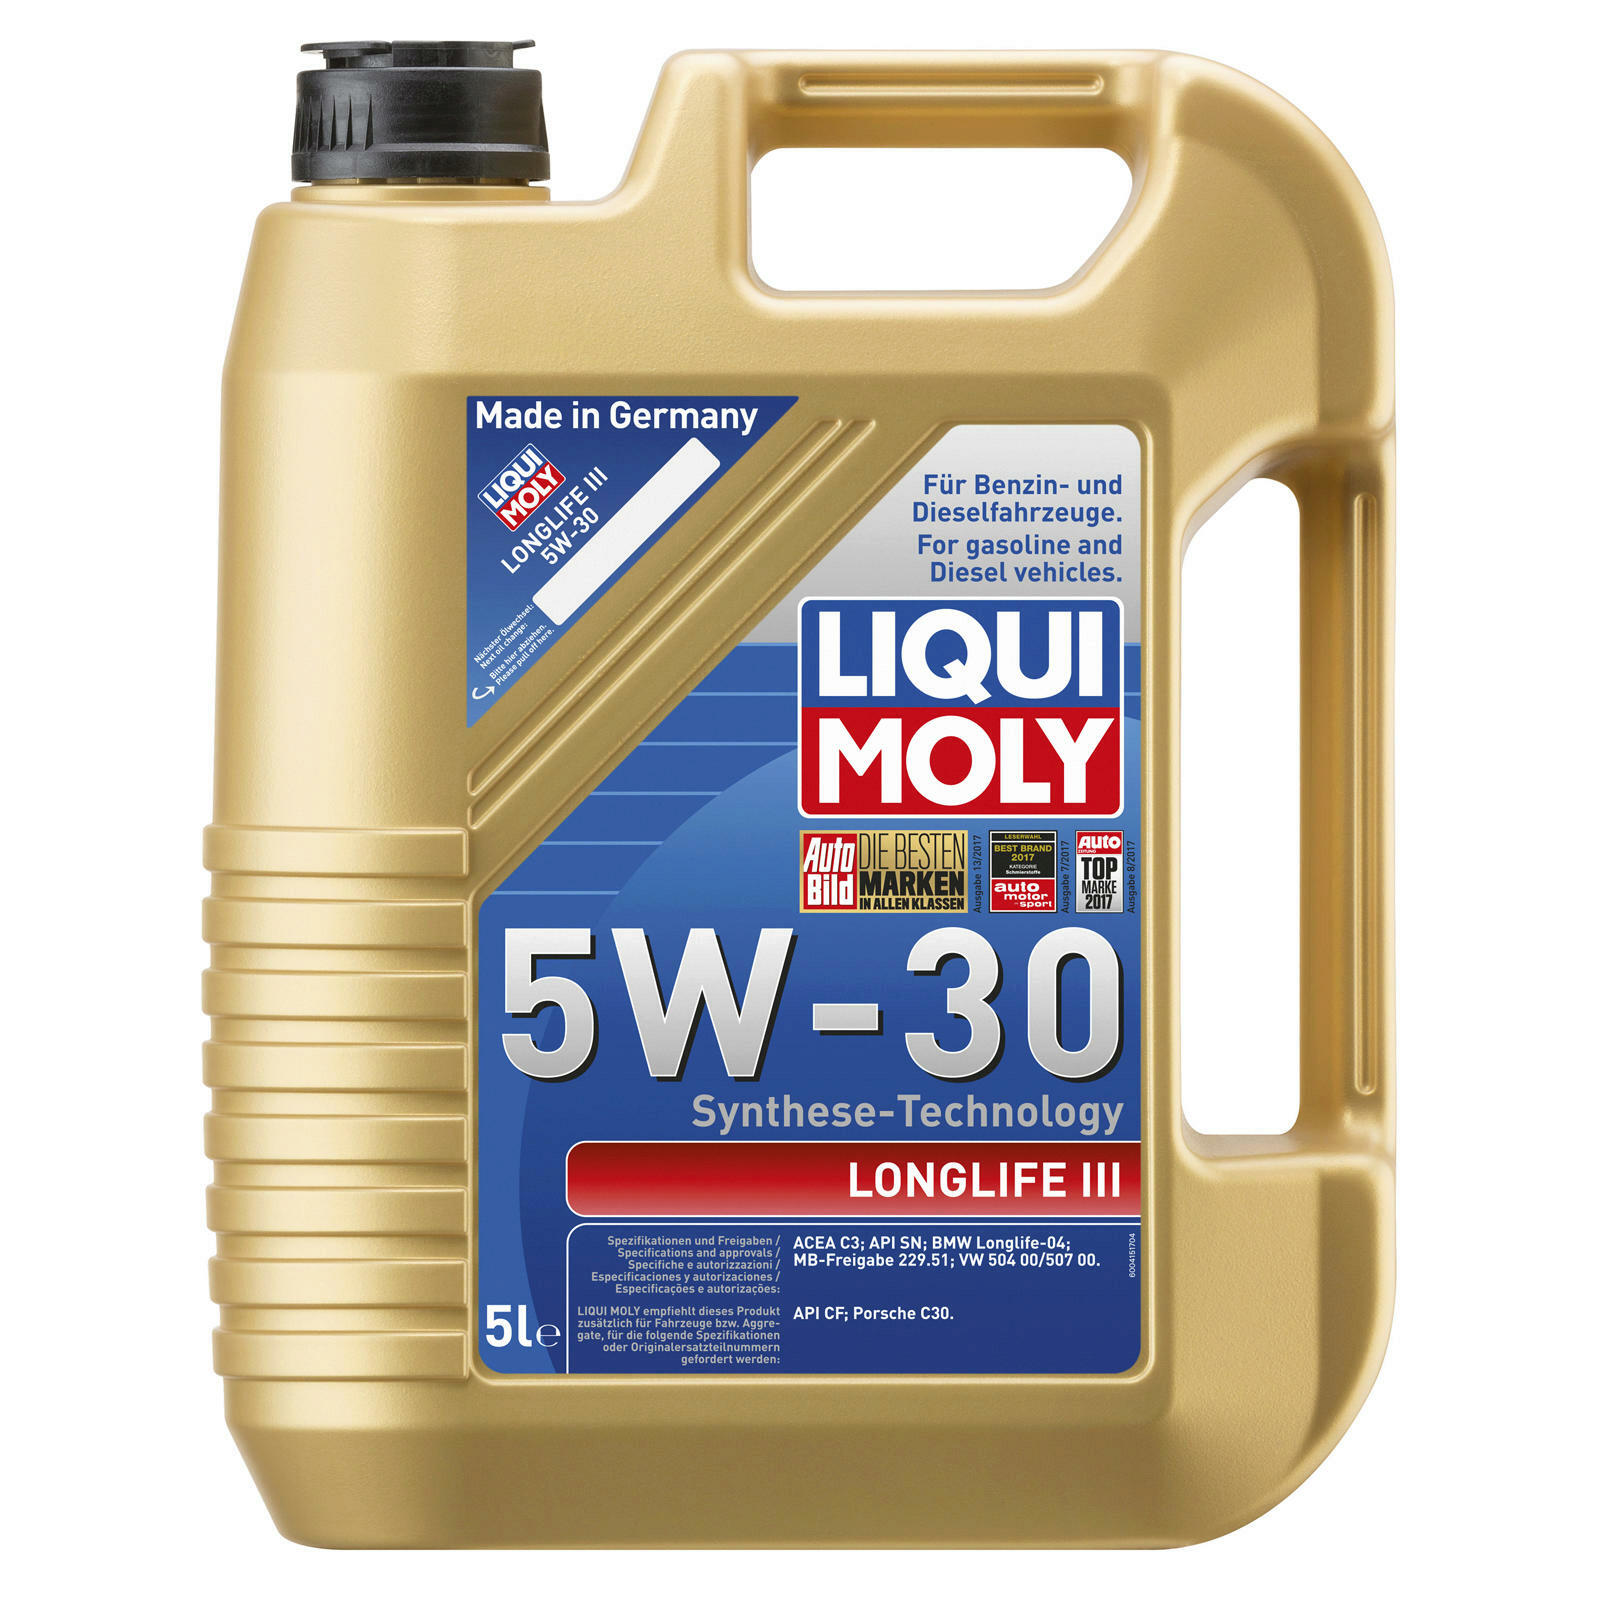 liqui moly motor l longlife iii 5w 30 5l 20647 ww405726. Black Bedroom Furniture Sets. Home Design Ideas